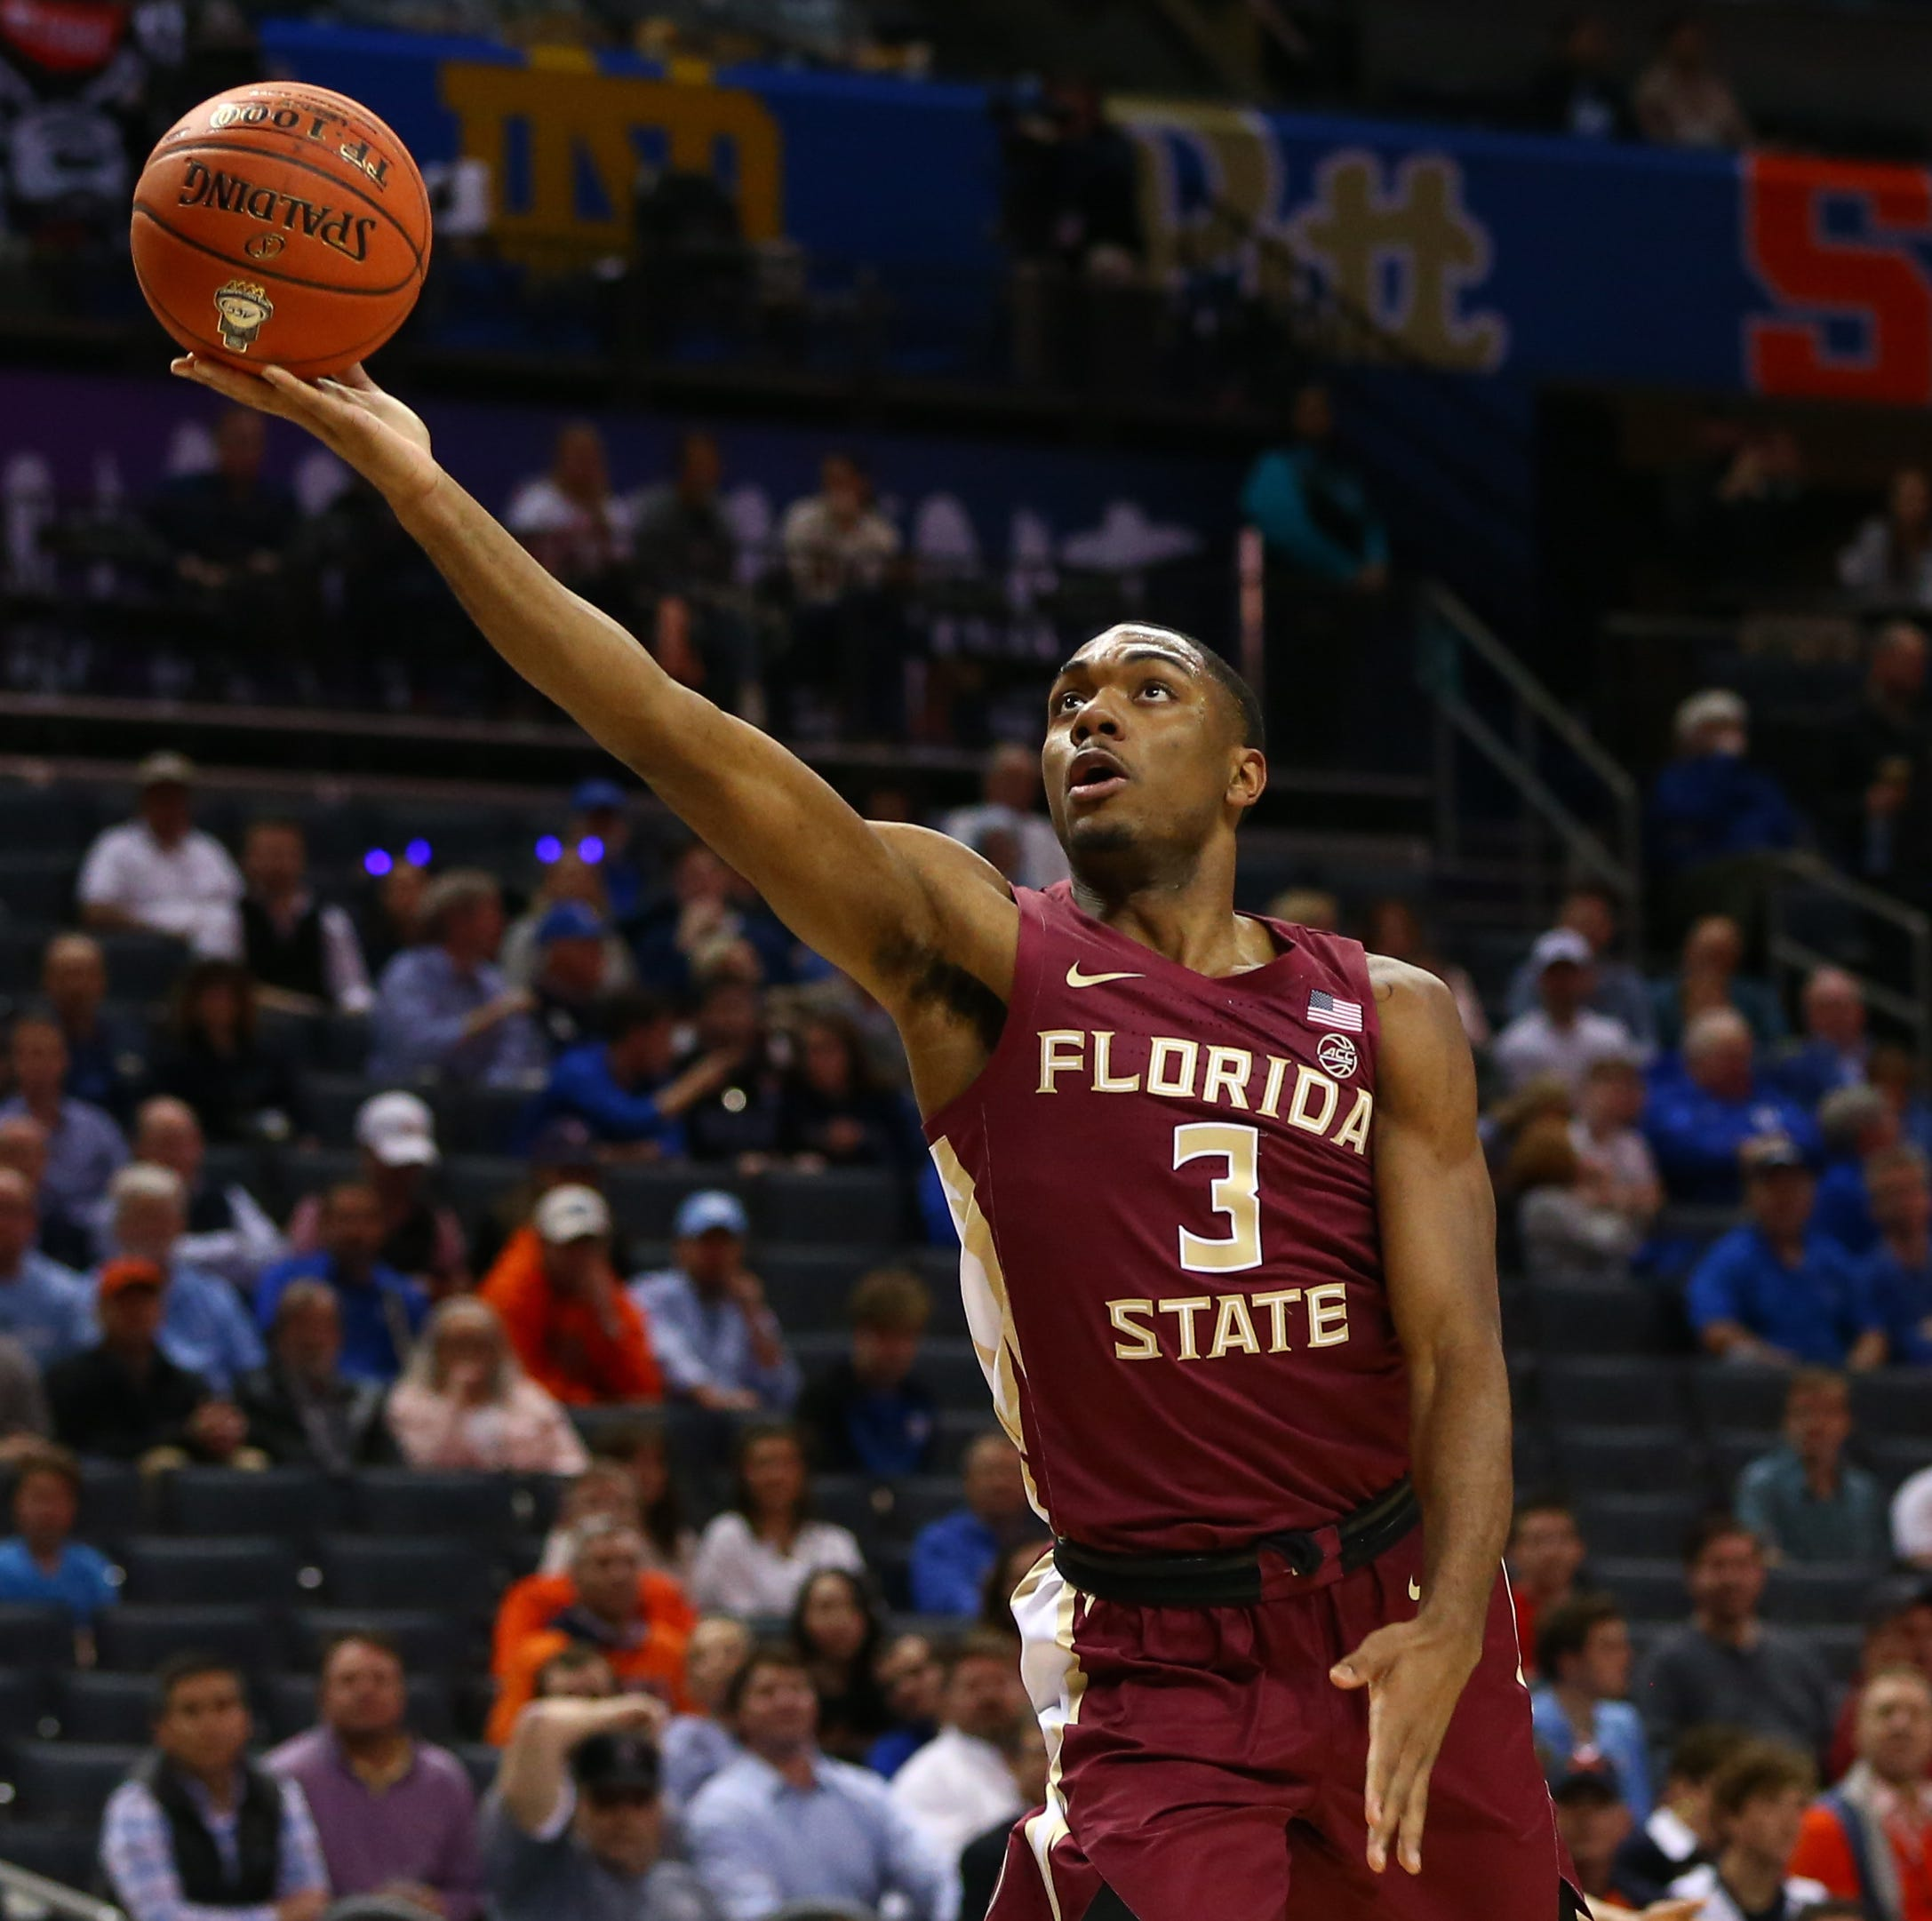 March Madness: 3 facts on the Florida State men's basketball team, Vermont's opponent